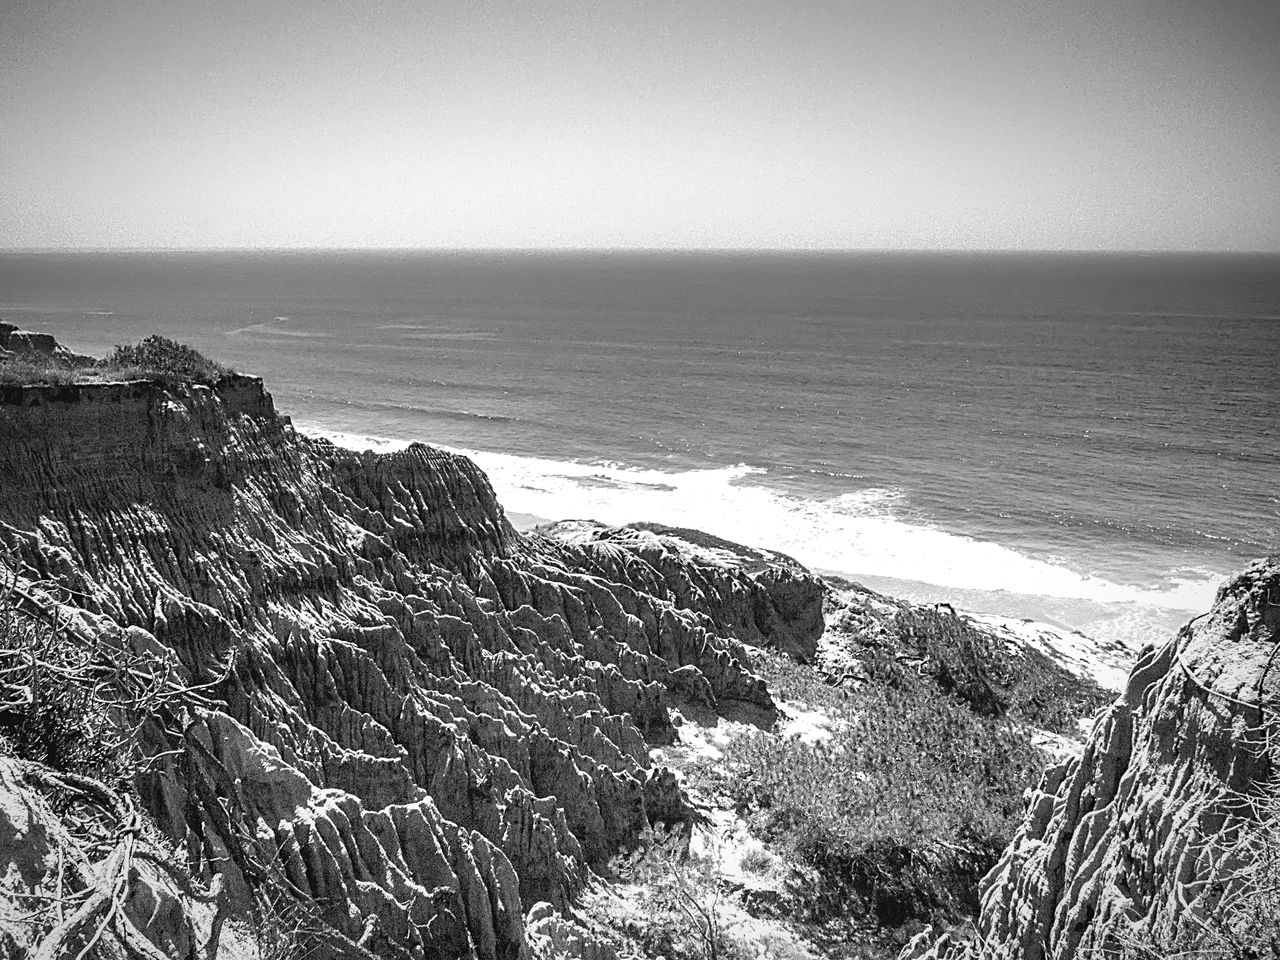 Erosion on Sandstone Cliffs at Torreypines state park San Diego California Blackandwhite Nature Landscape Pacific Ocean